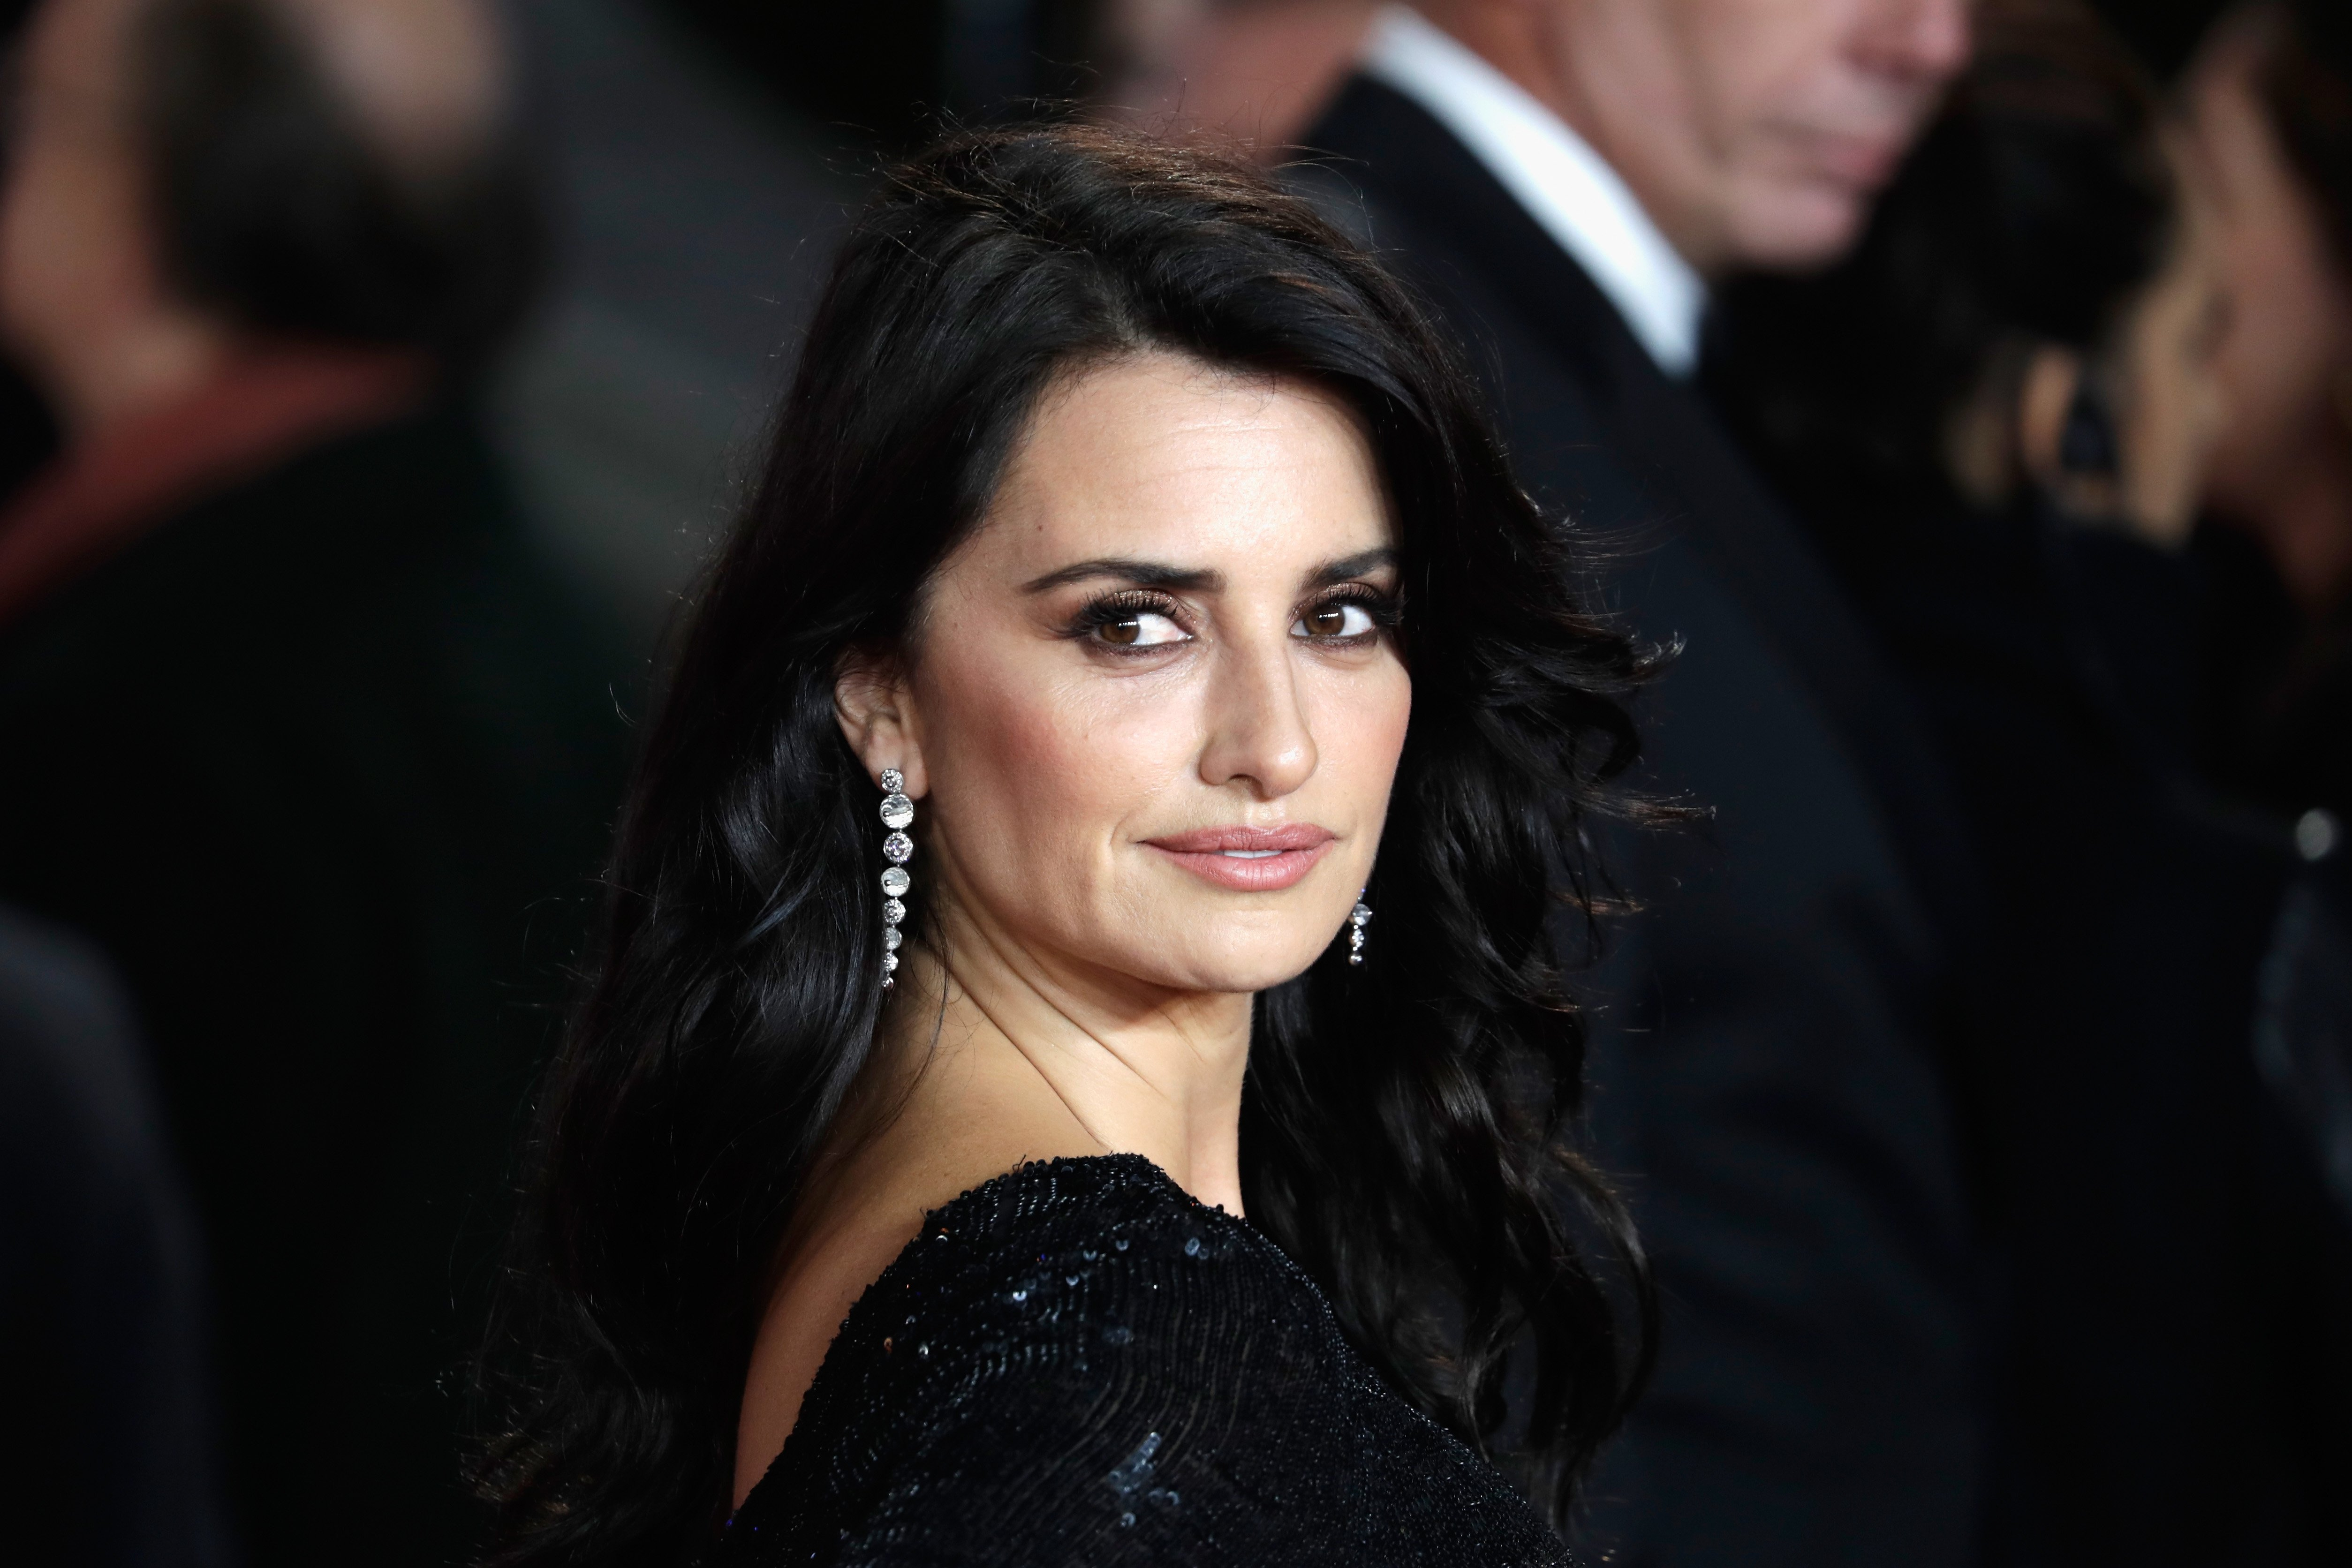 Image Credits: Getty Images / John Phillips | Penelope Cruz attends the 'Murder On The Orient Express' World Premiere at Royal Albert Hall on November 2, 2017 in London, England.